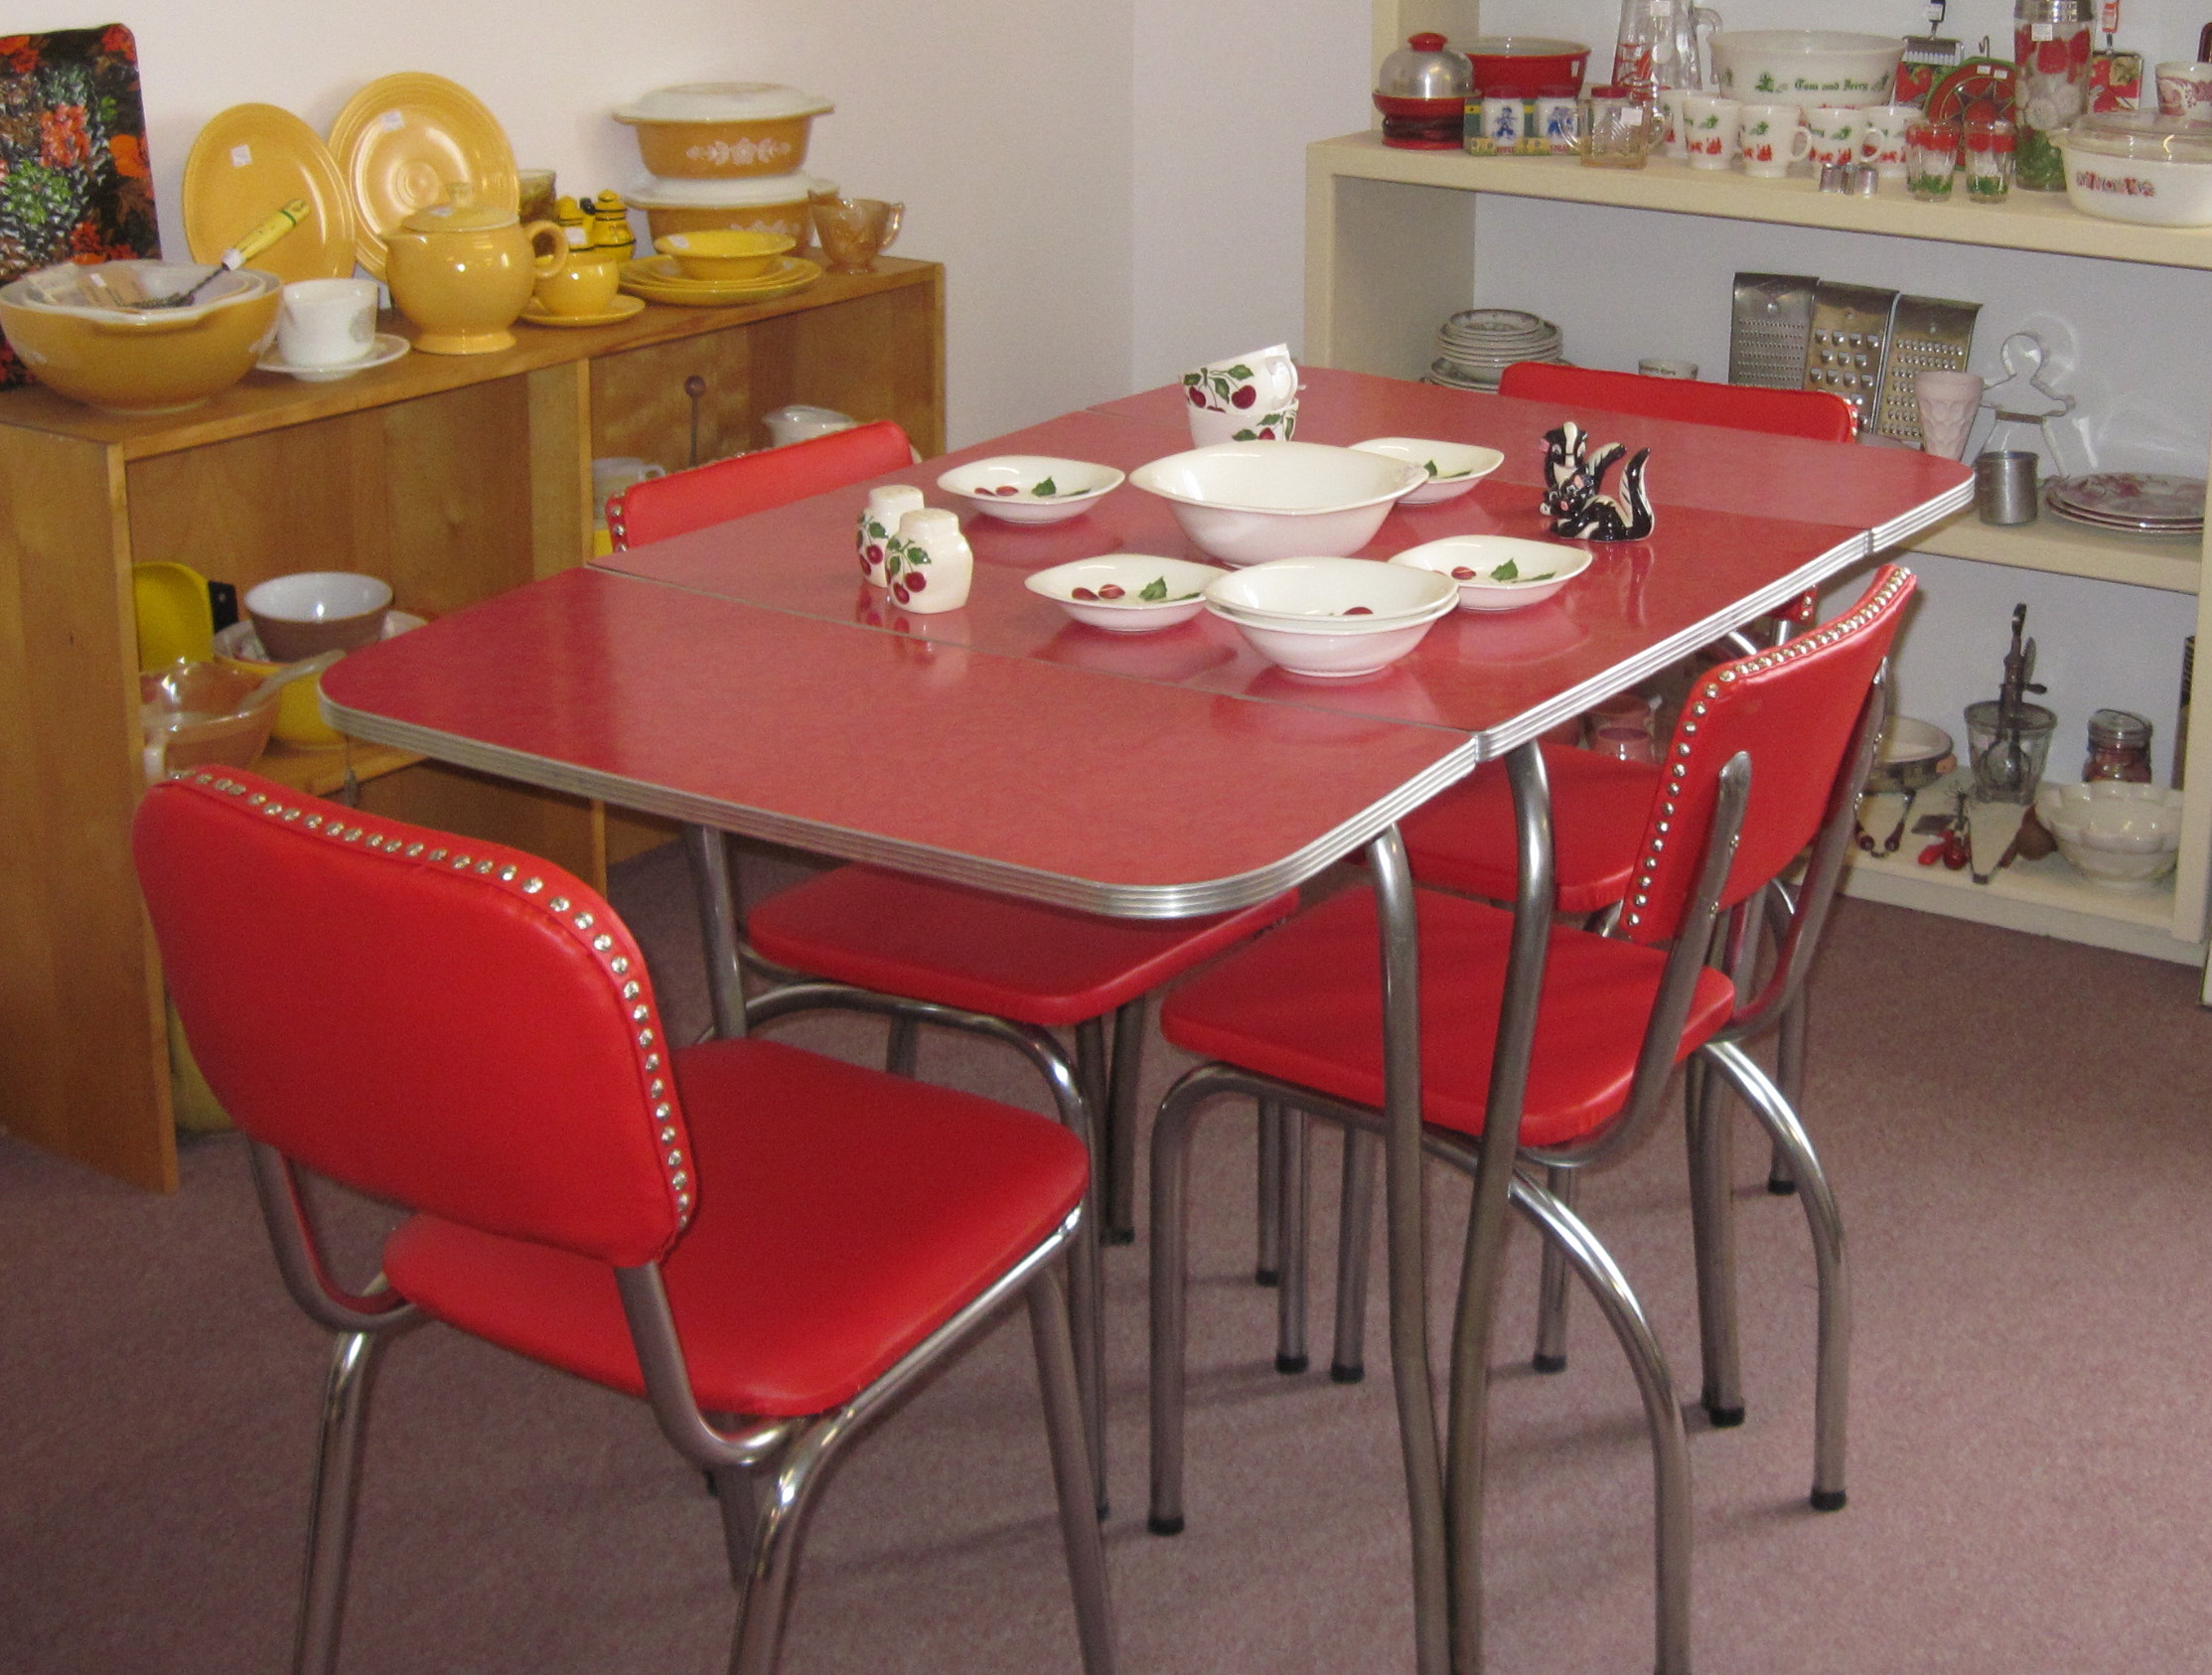 vintage kitchen table and chairs set photo - 2